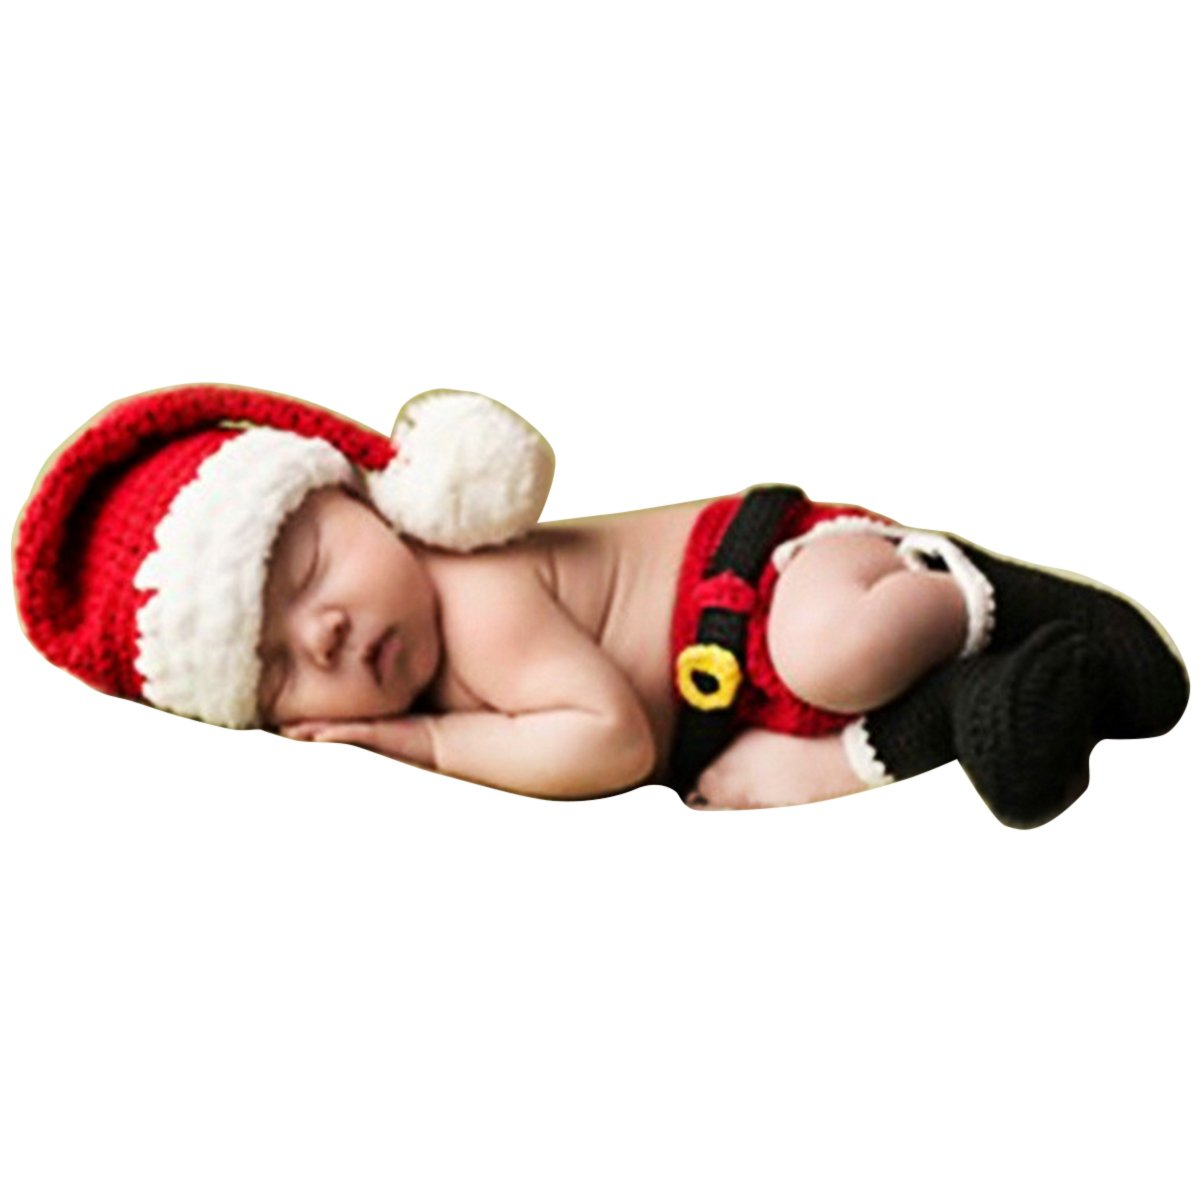 New Born Baby Christmas Costume Handmade Newborn Baby Boy Photo Photography Props Crochet Knitted Prop Clothes Outfits Blankets(6~12months) BTJP